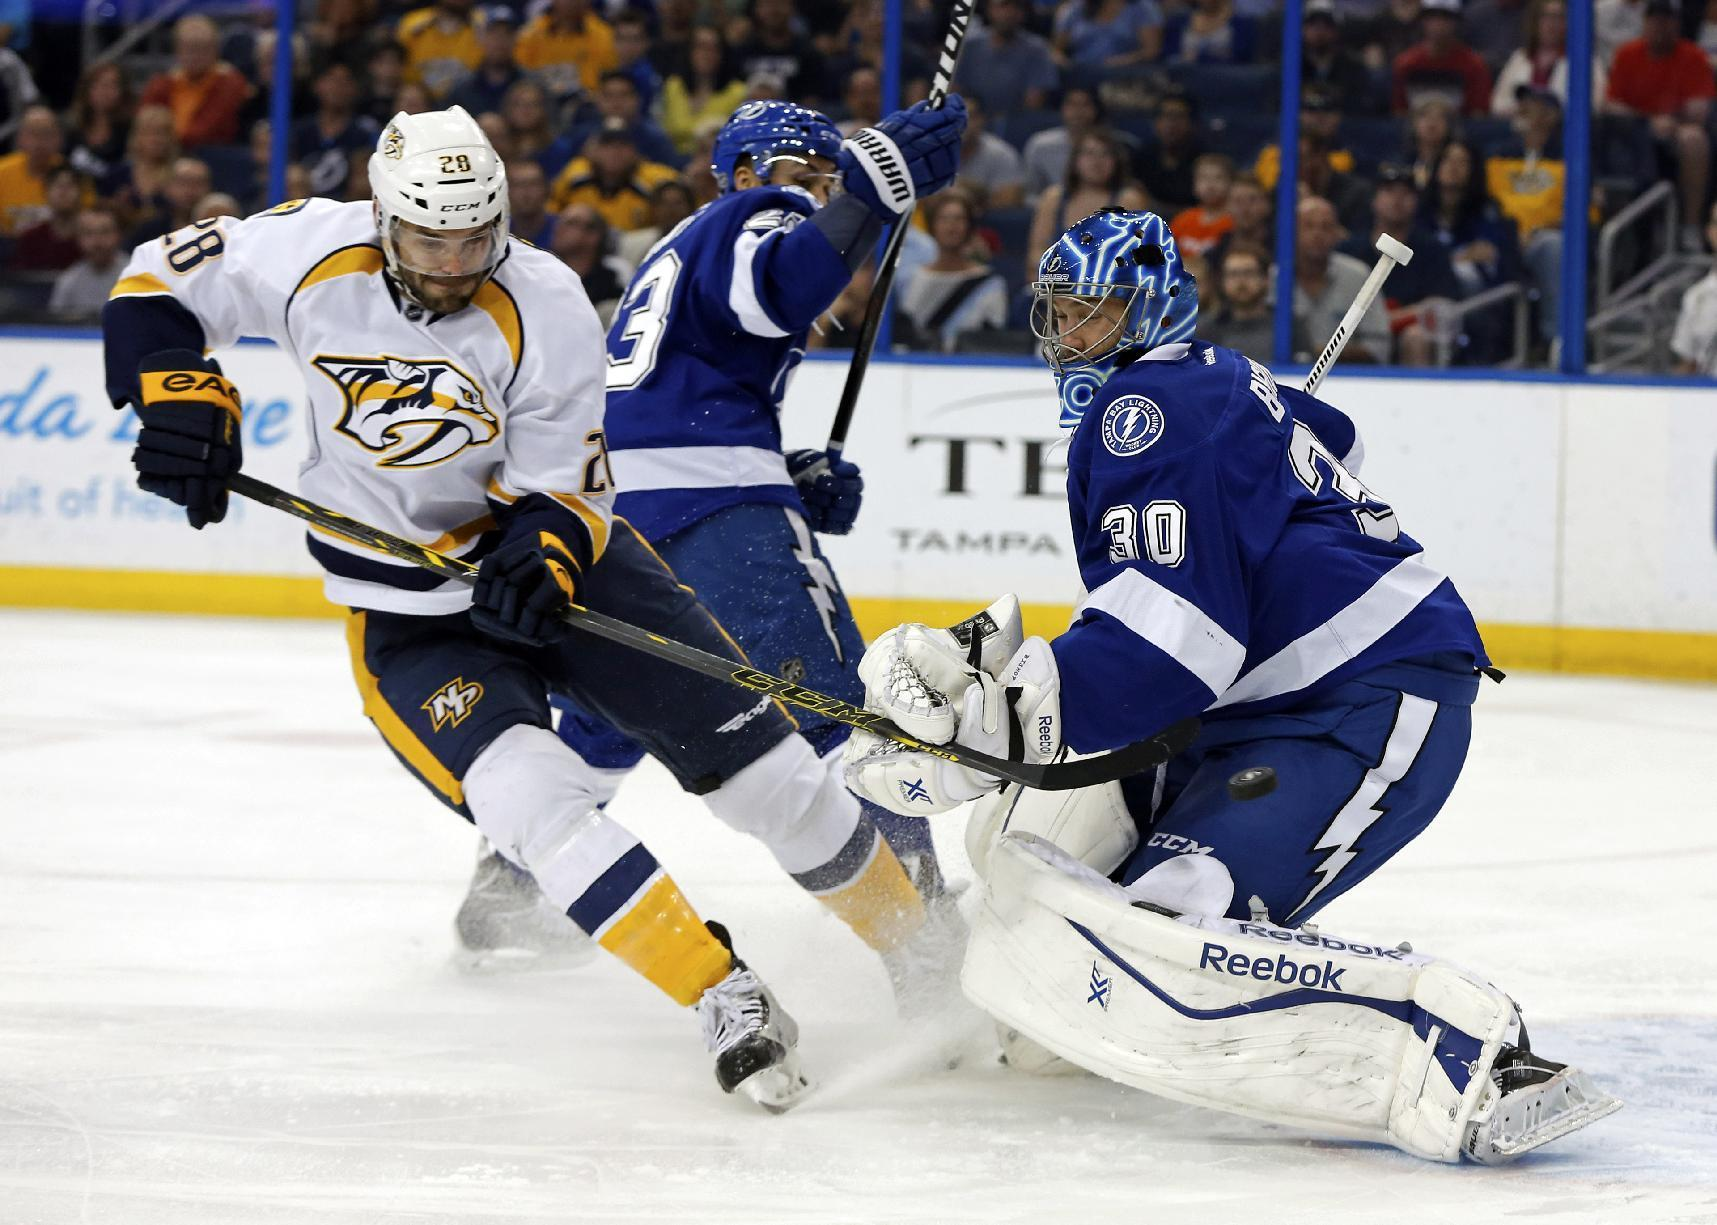 Rinne gets 40th win, Predators beat Lightning 3-2